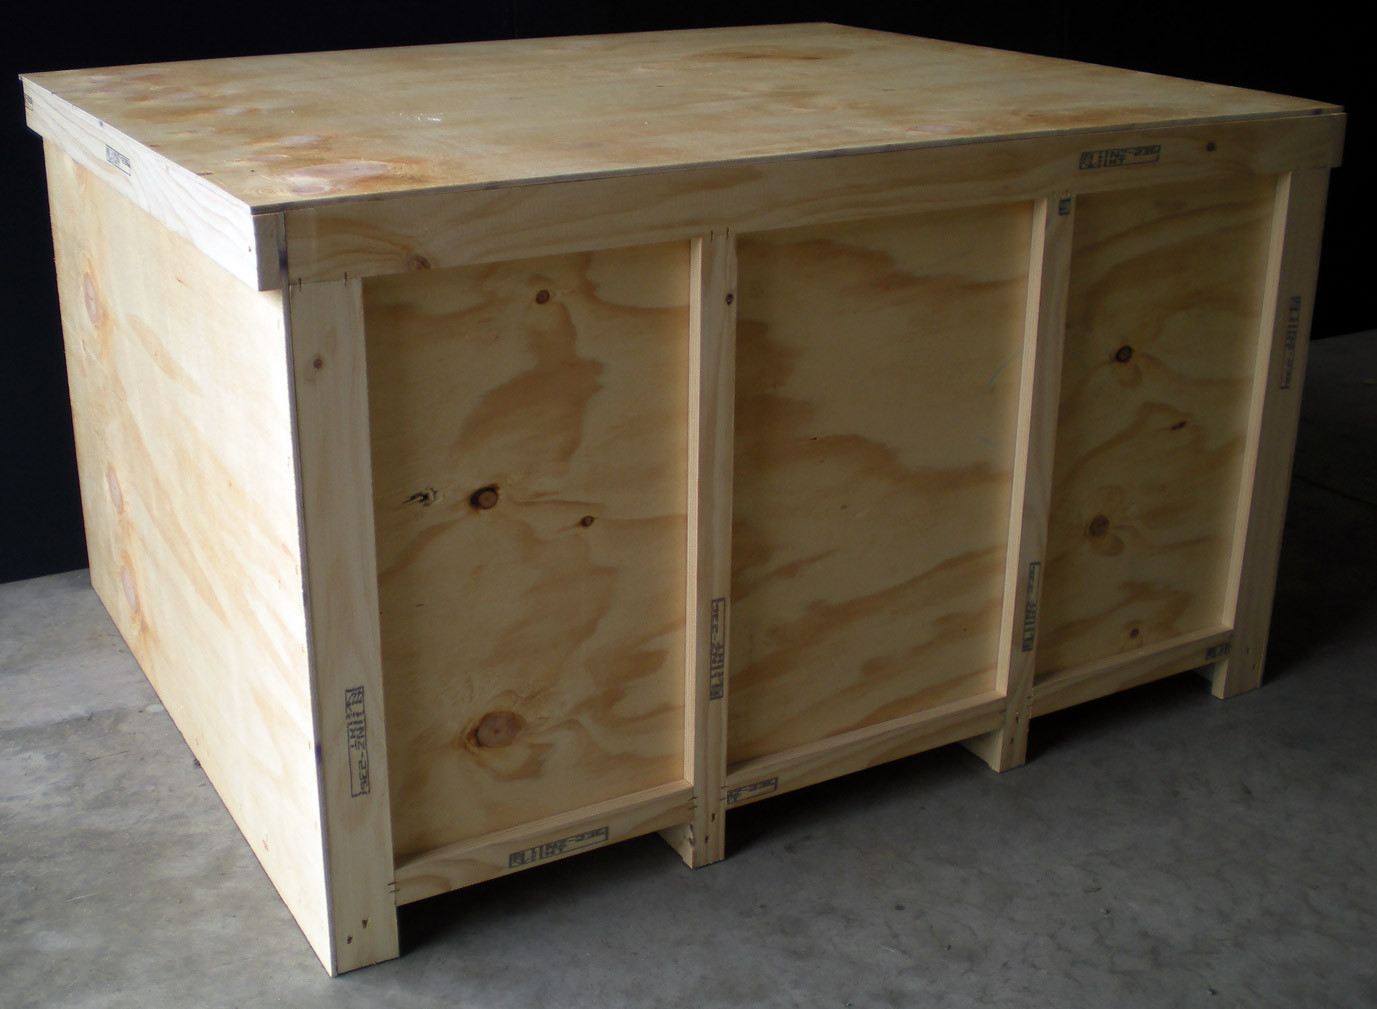 Medium crate with forklift base